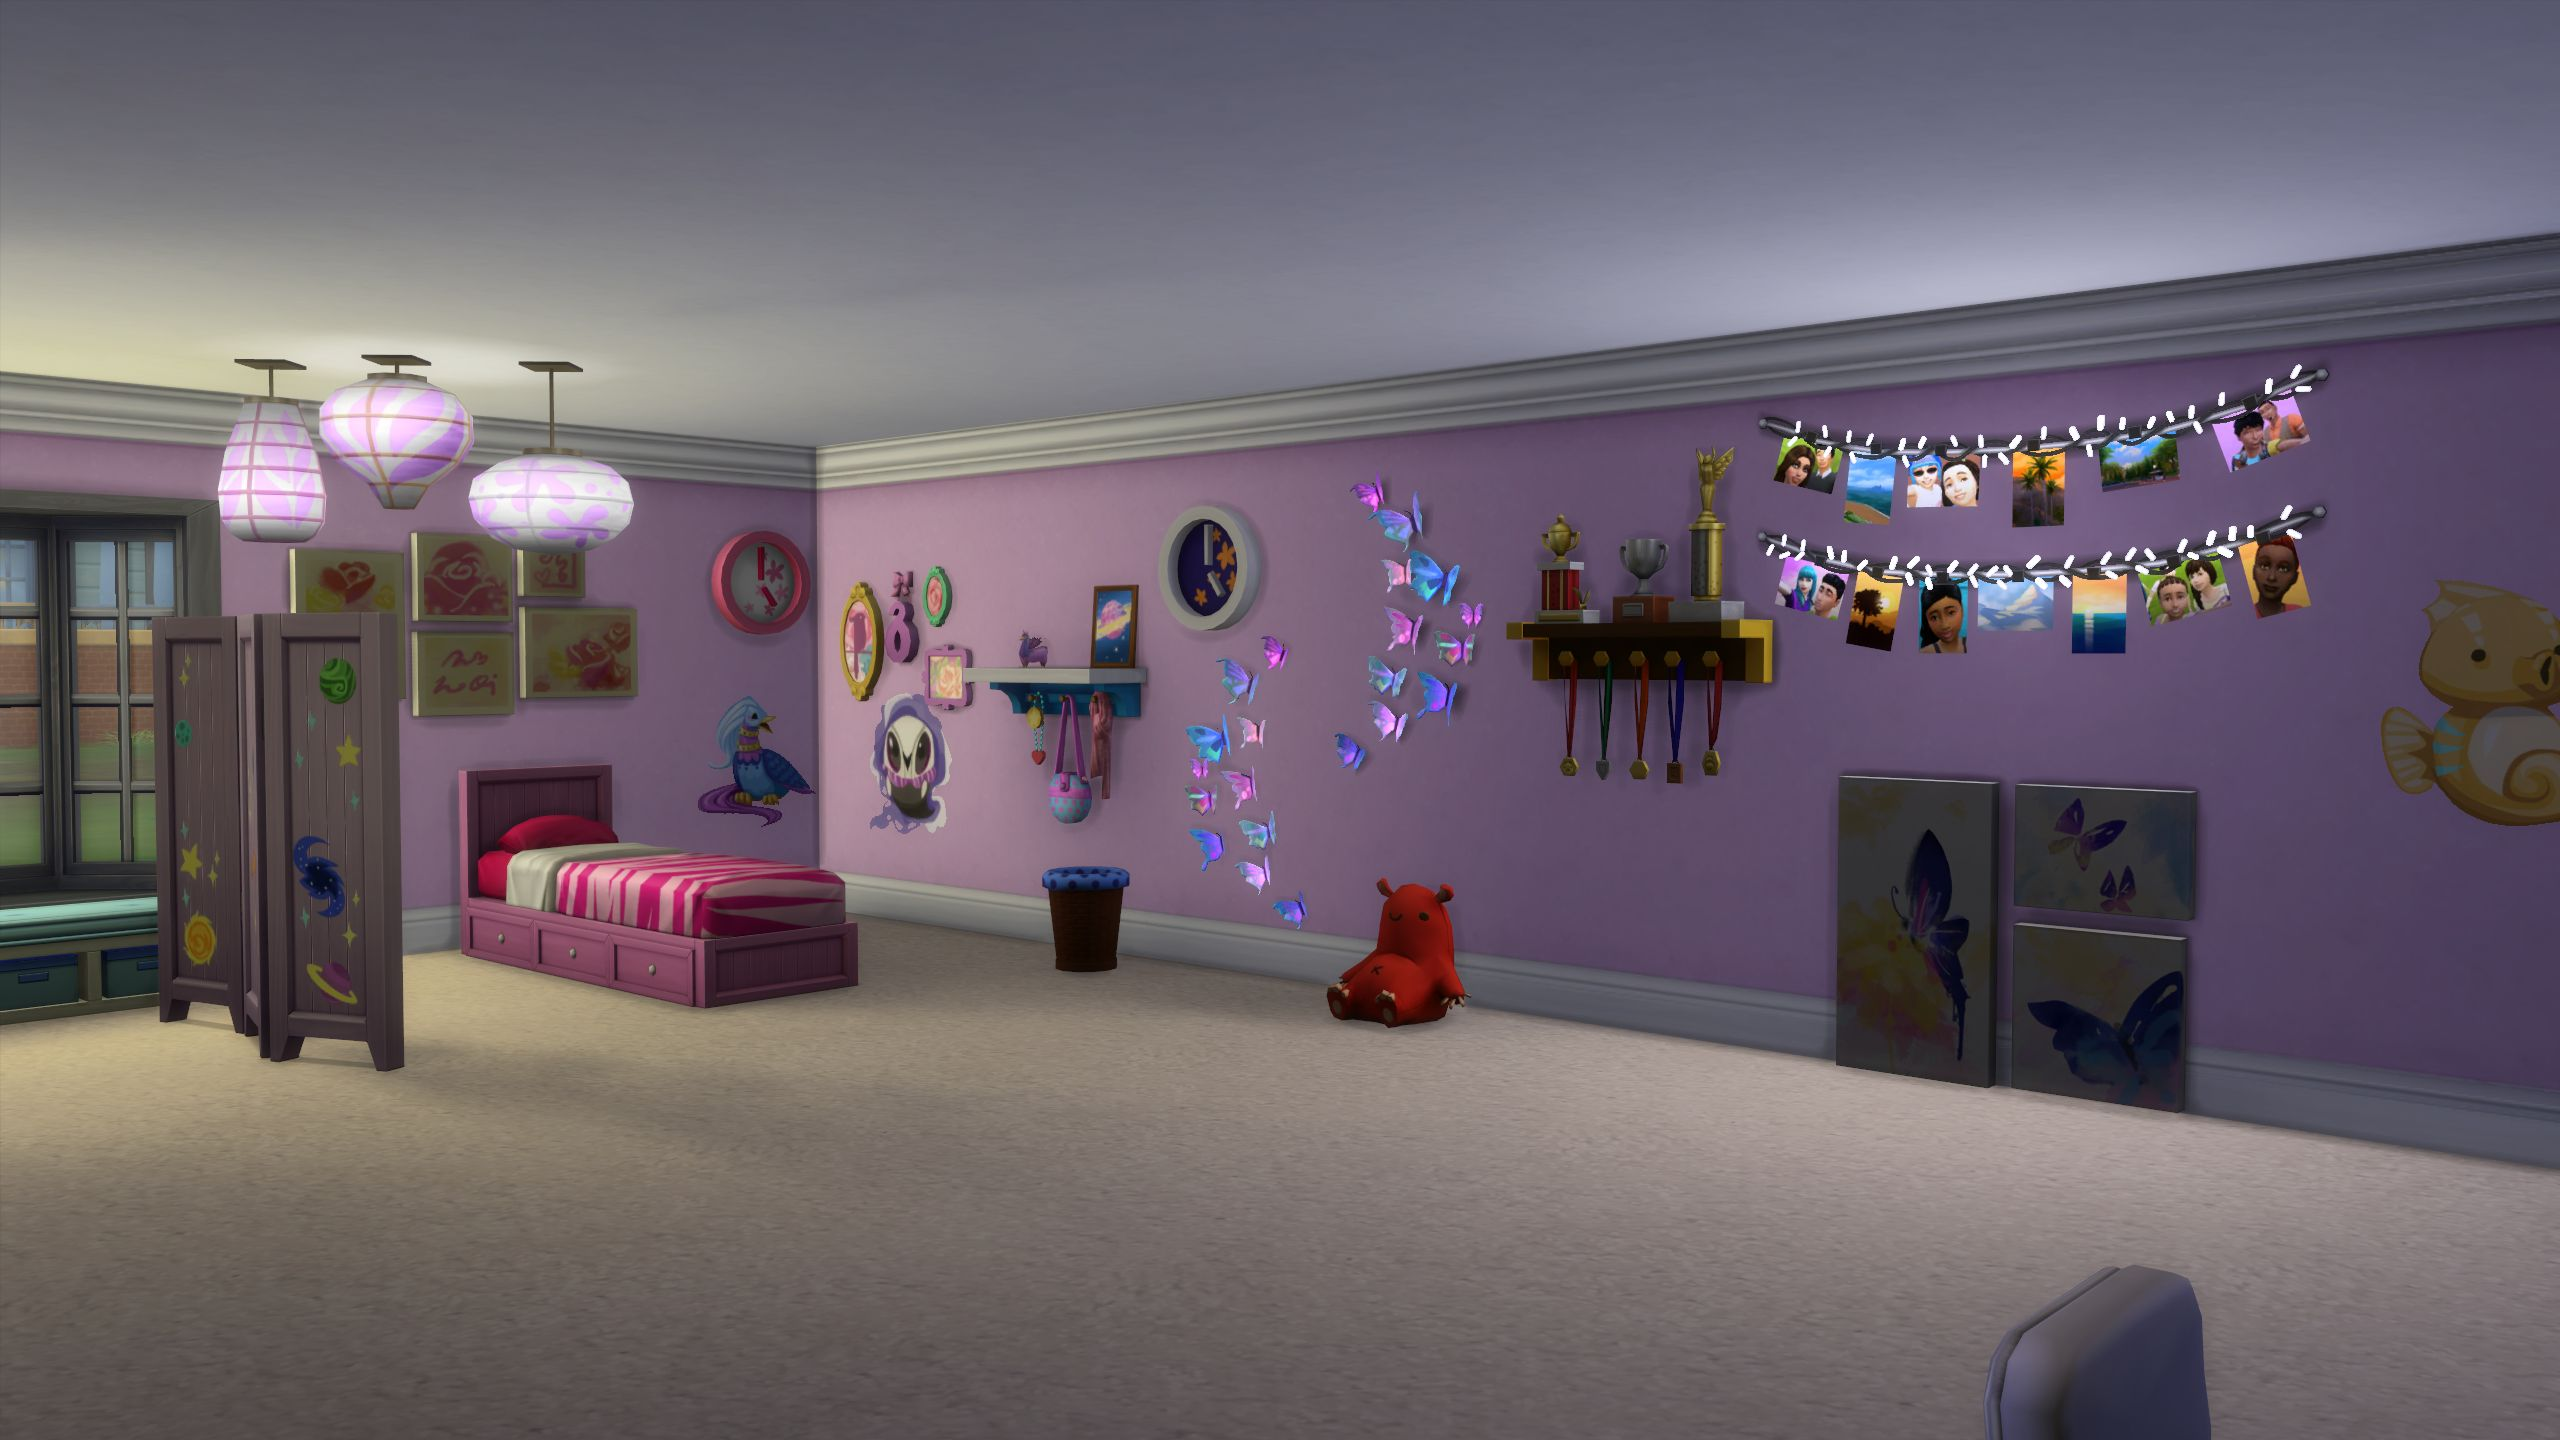 Stuff For Room Decor The Sims 4 Kids Room Stuff Pack